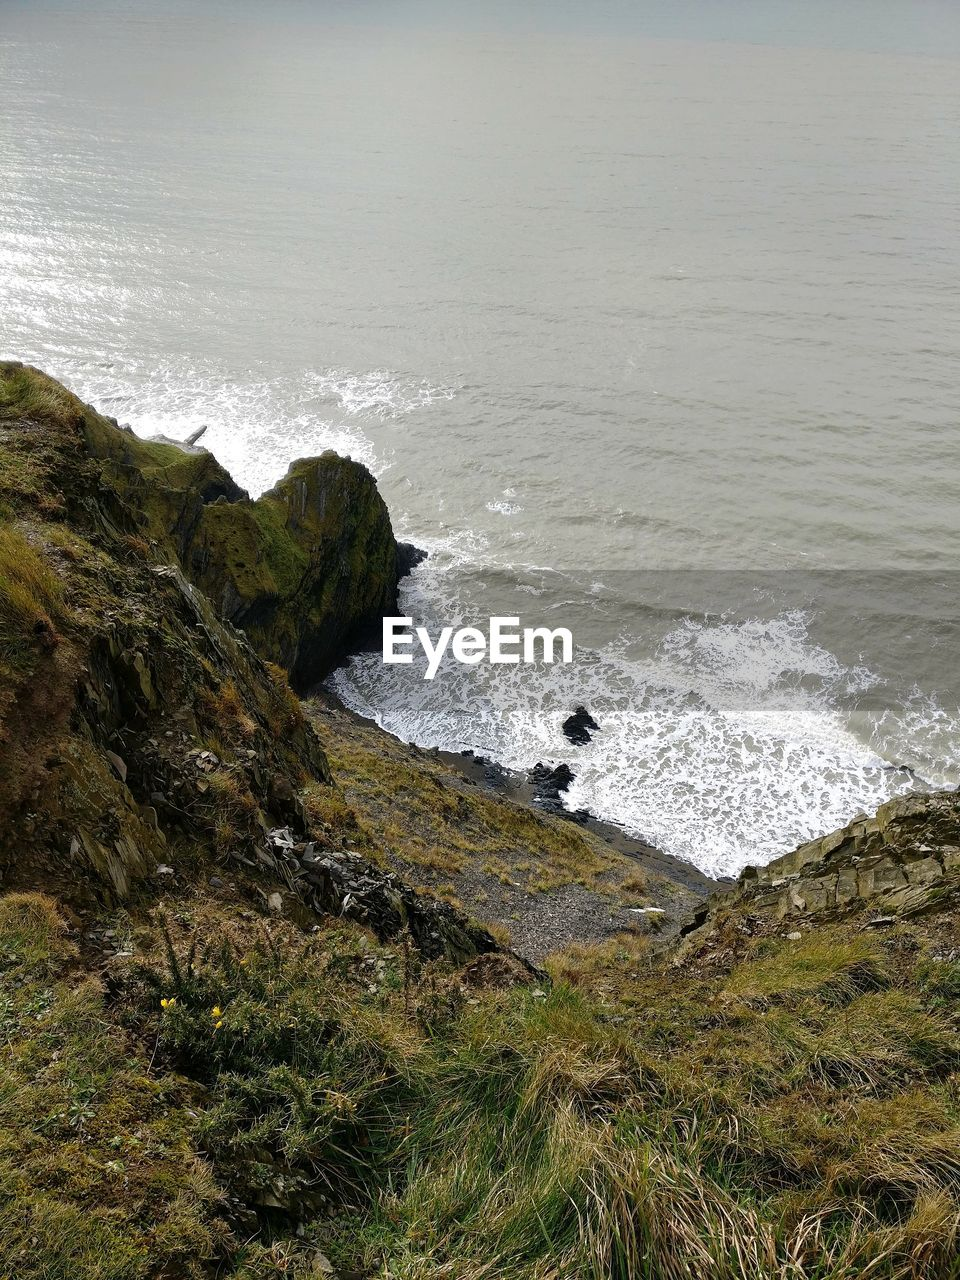 sea, nature, water, beauty in nature, rock - object, high angle view, no people, scenics, day, outdoors, wave, grass, force